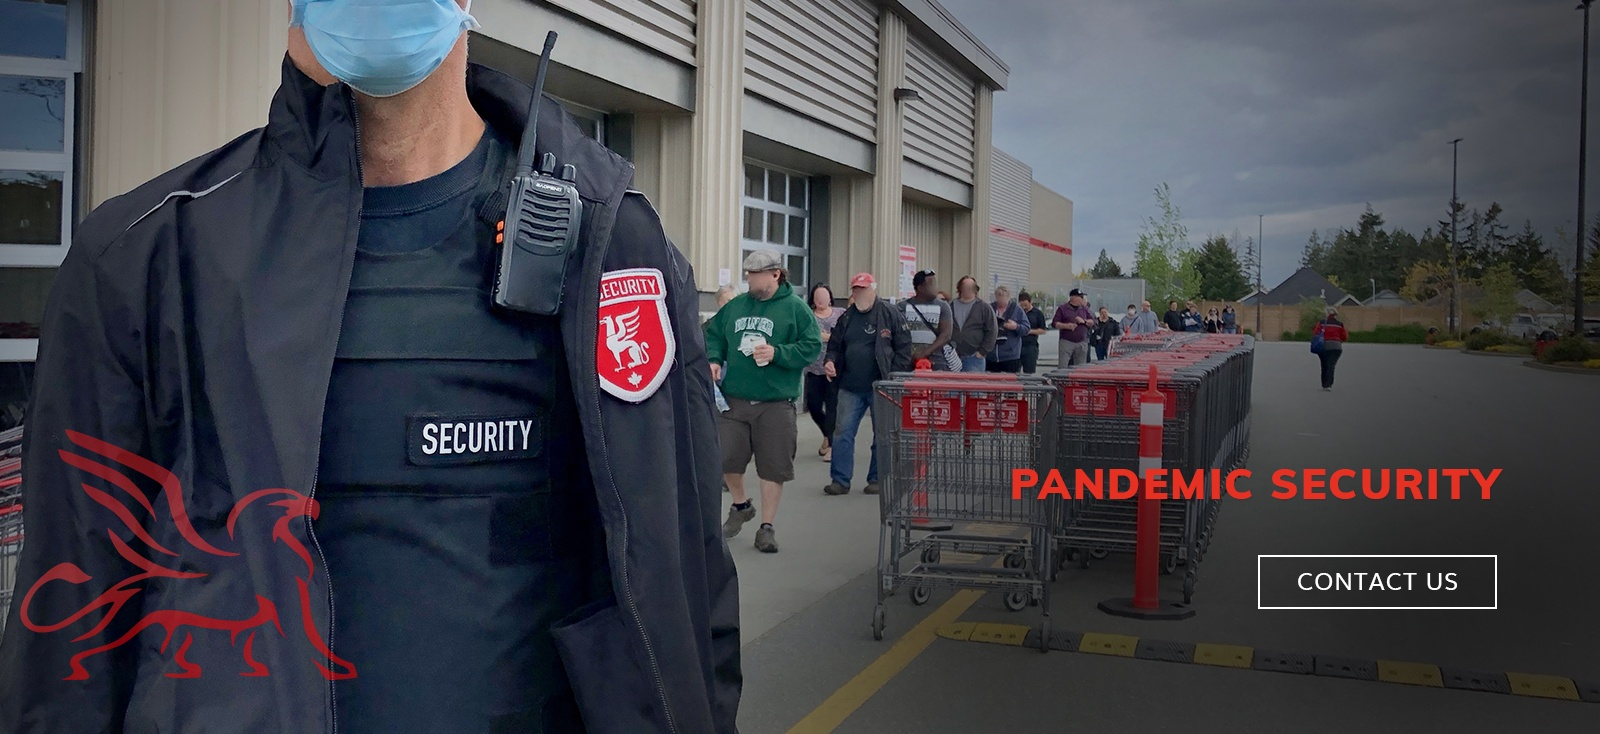 Pandemic Security Vancouver by JTFSecurity Group